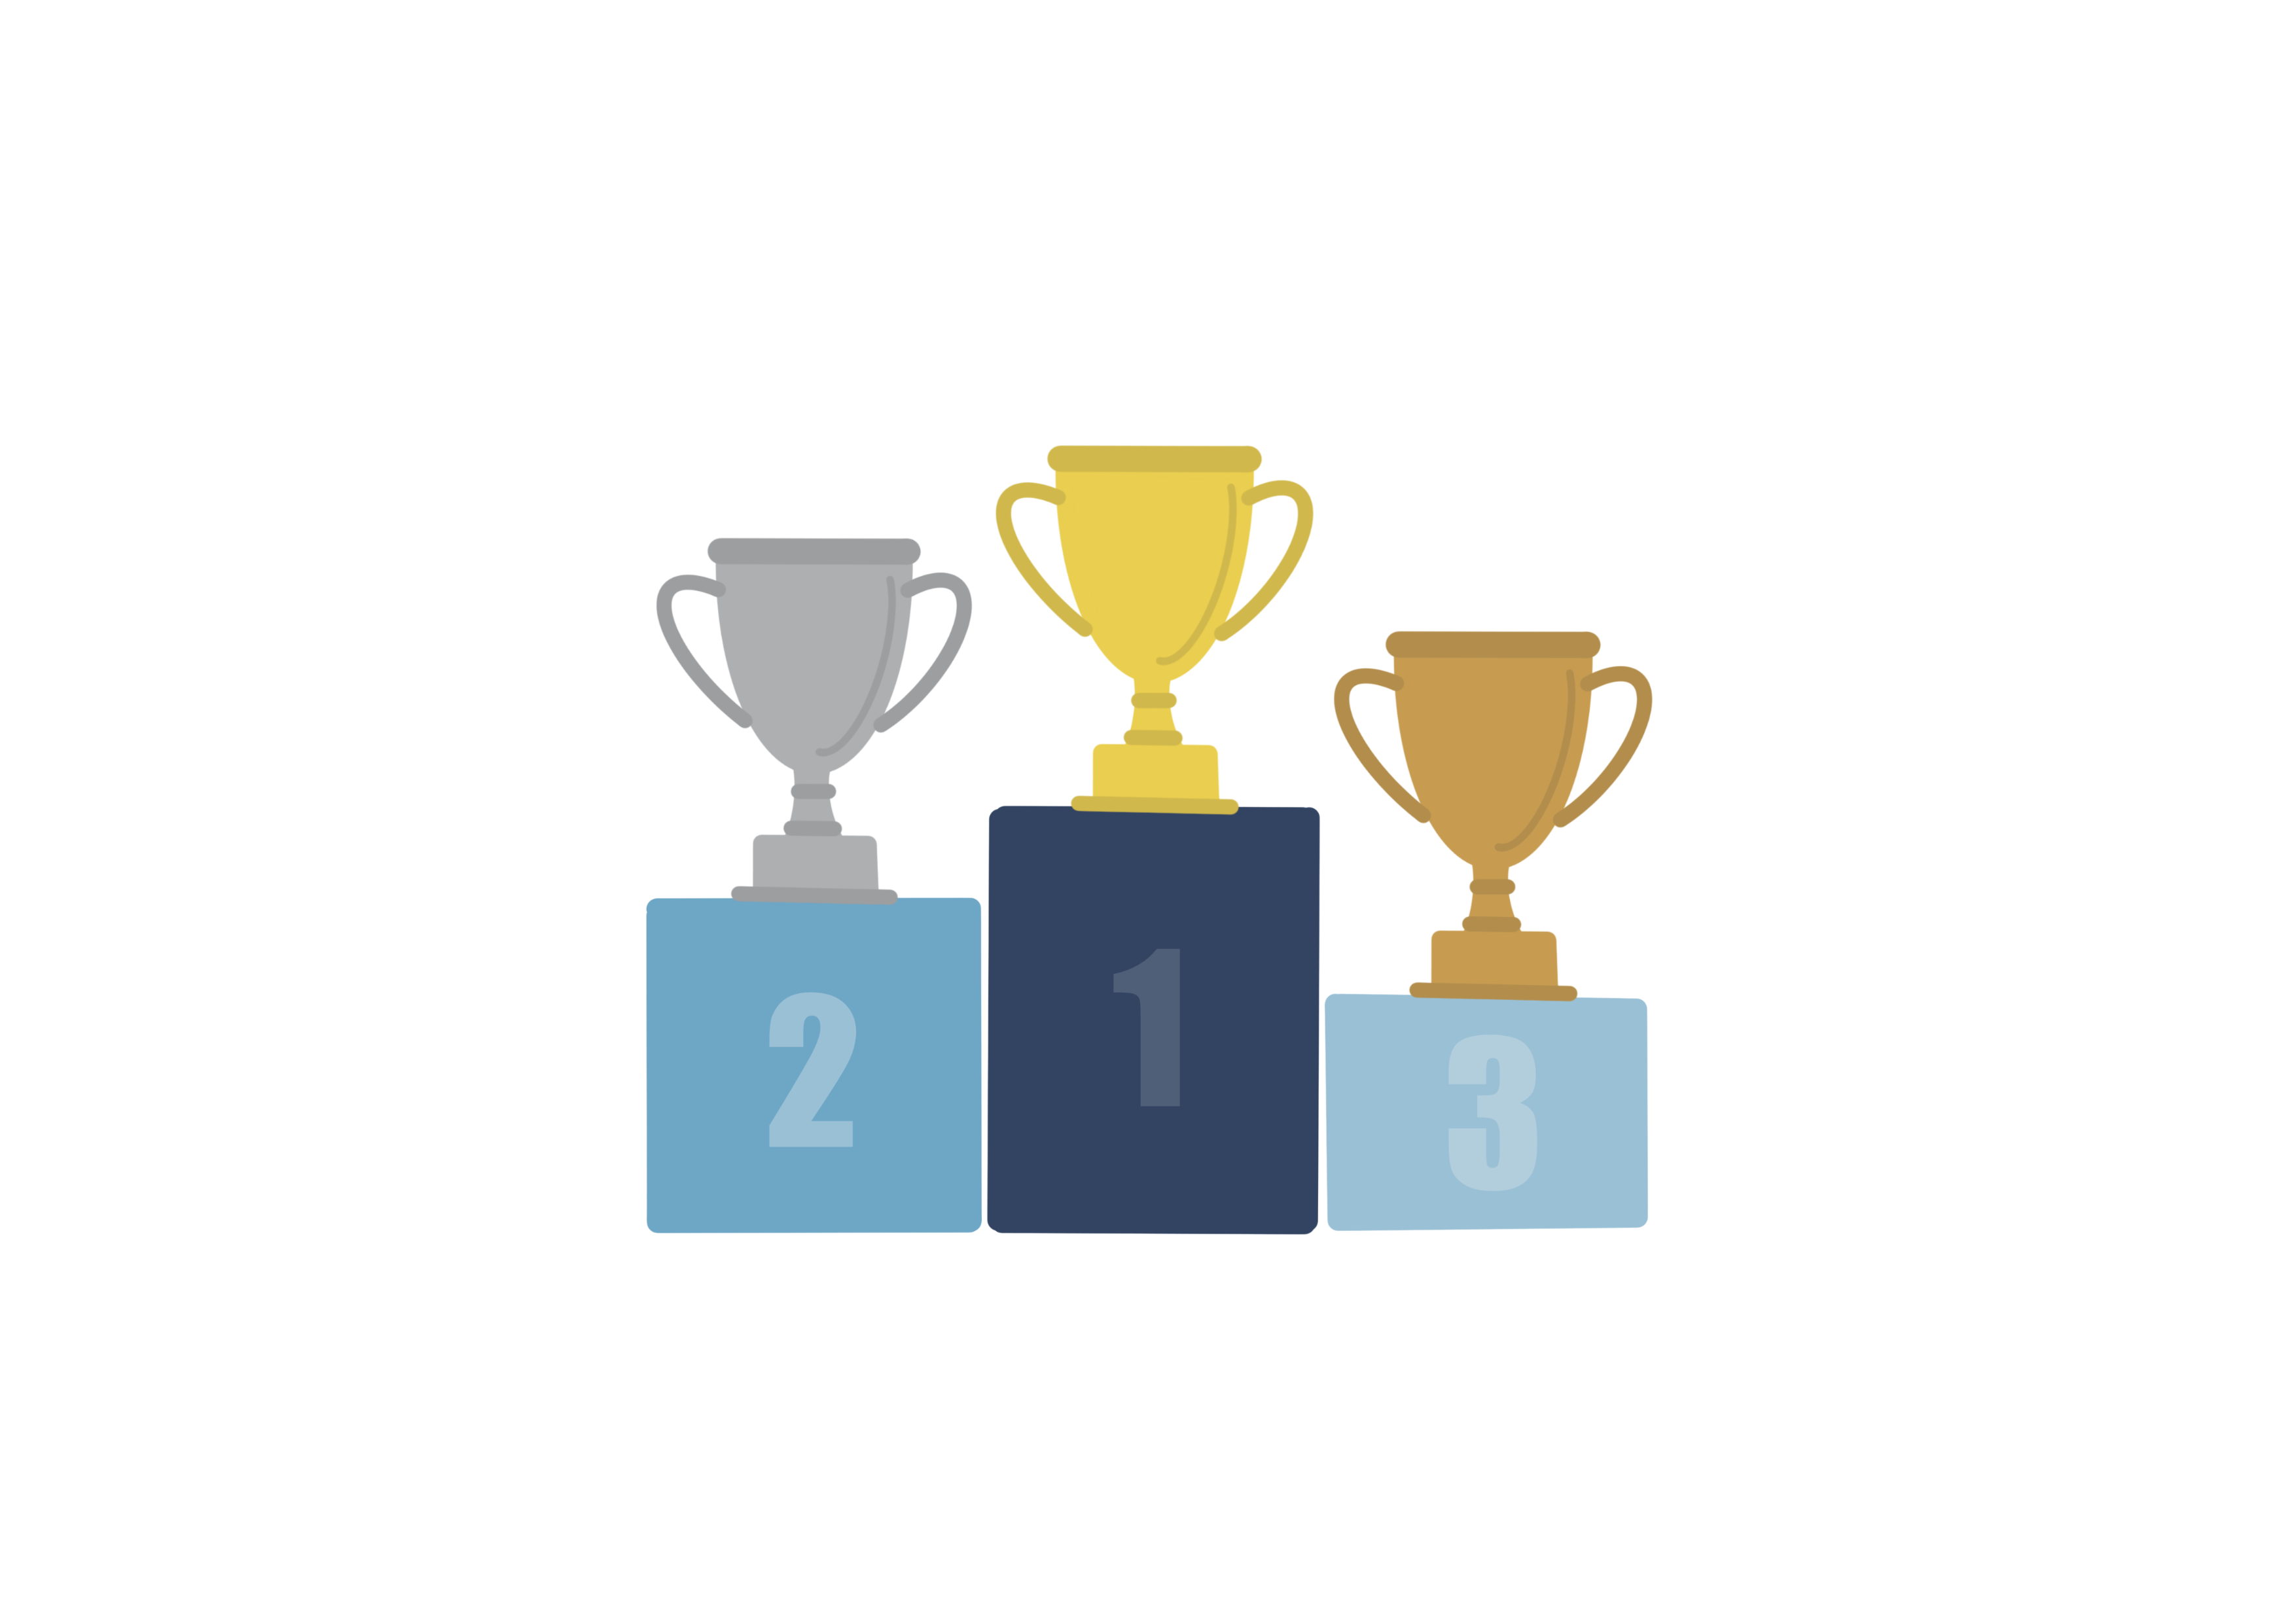 illustration of ranking first second and third place trophies